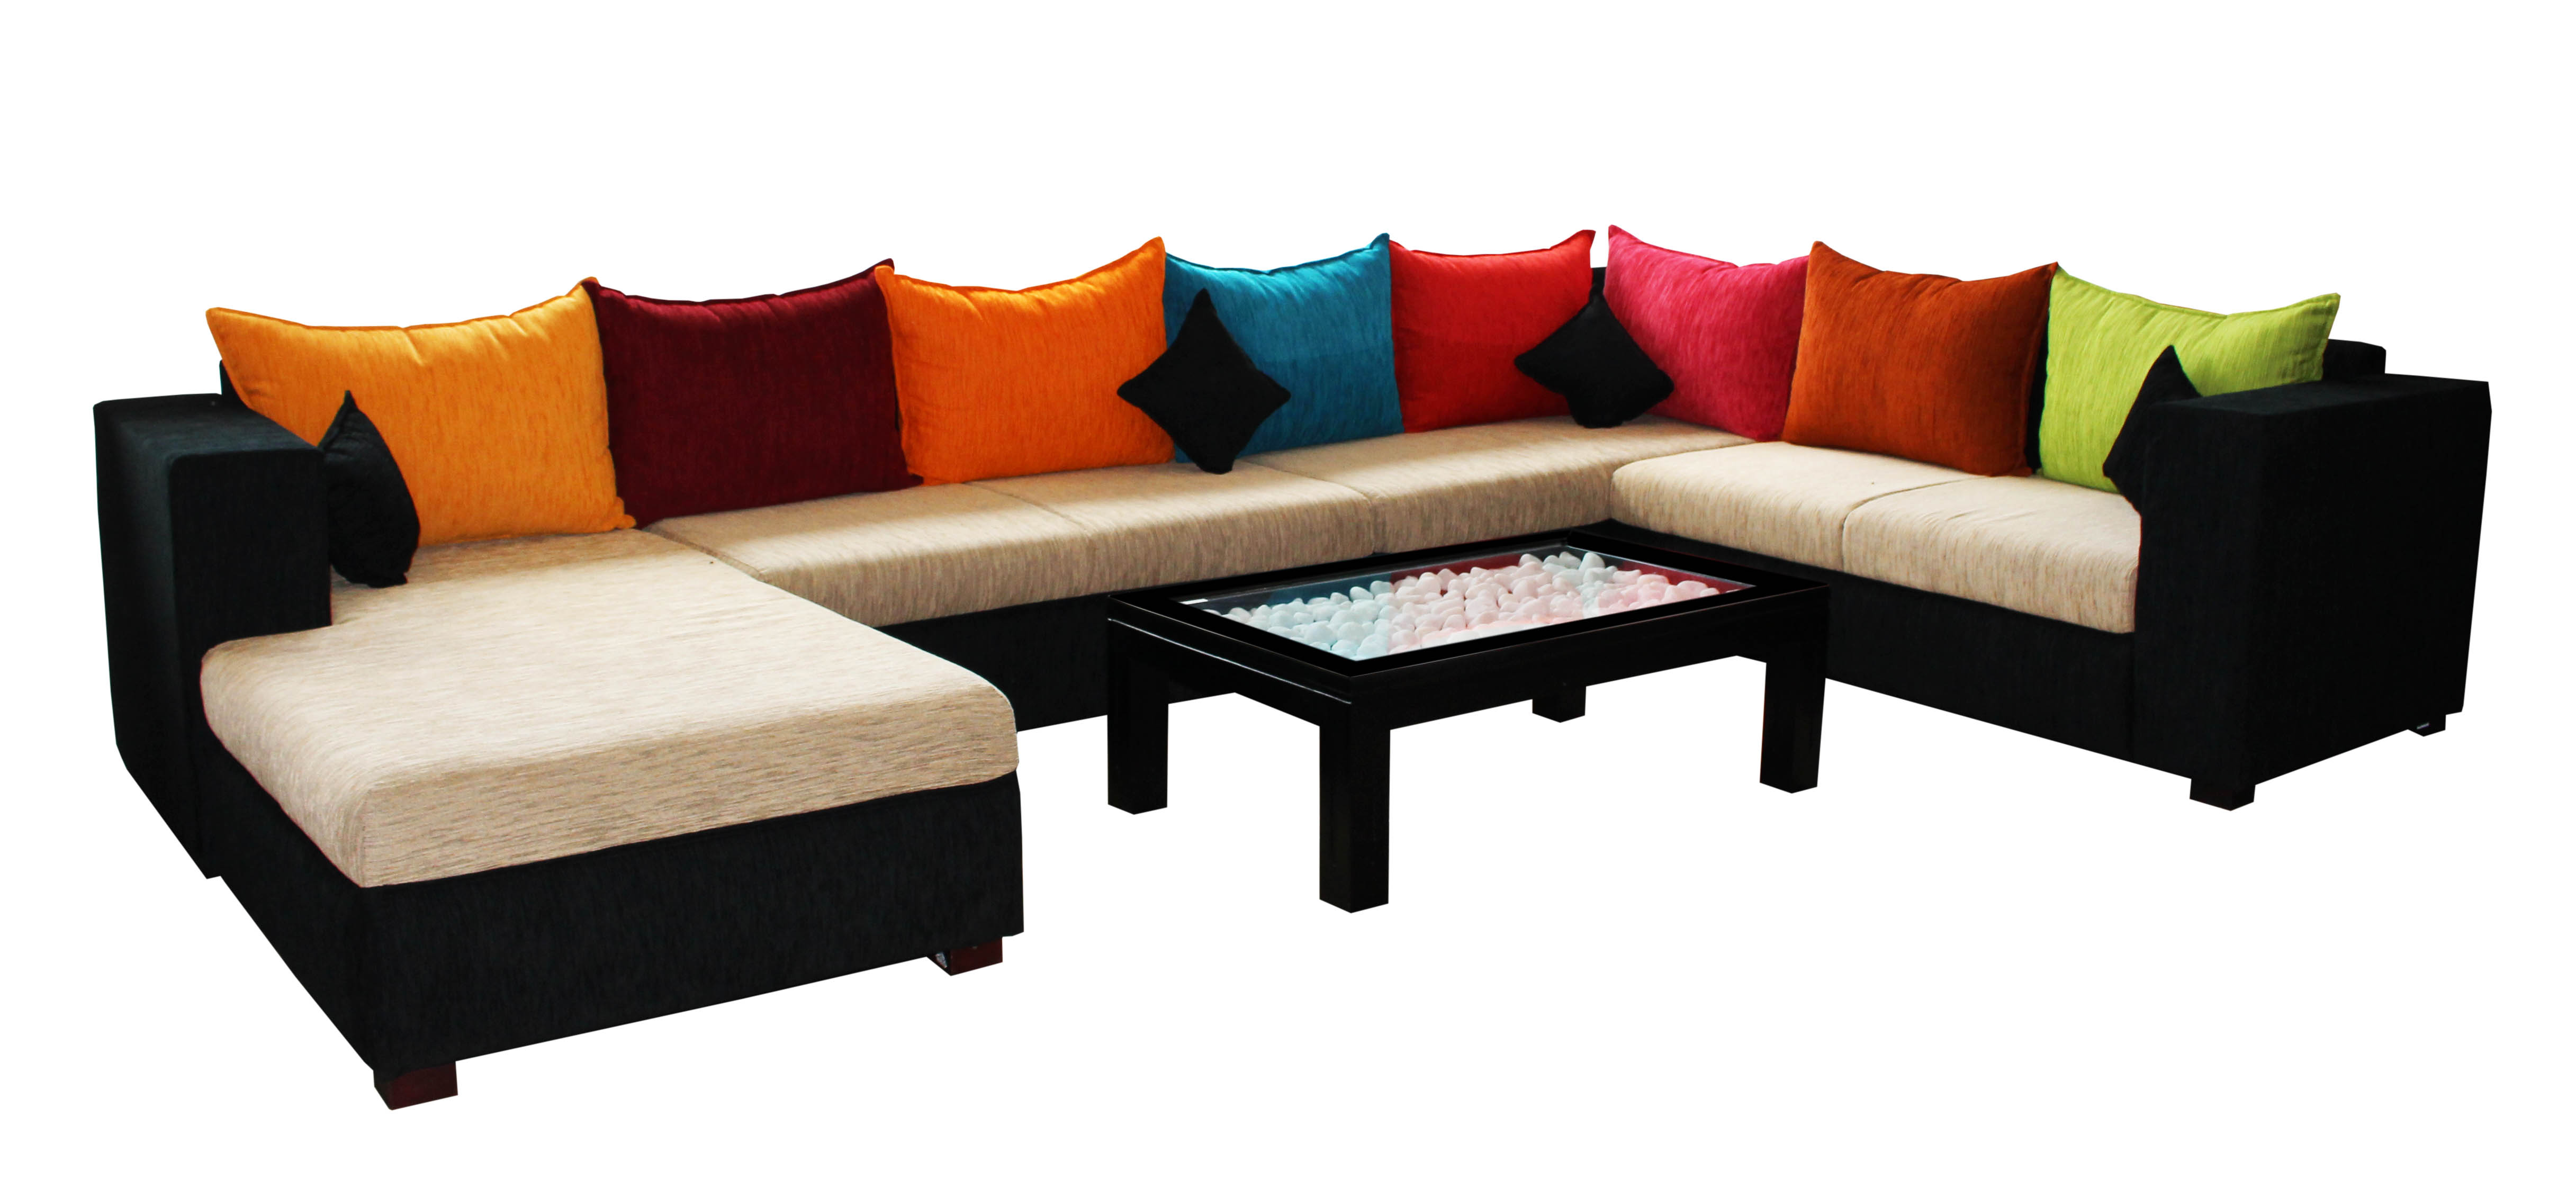 L Shaped Sofa Shade Arpico Furniture